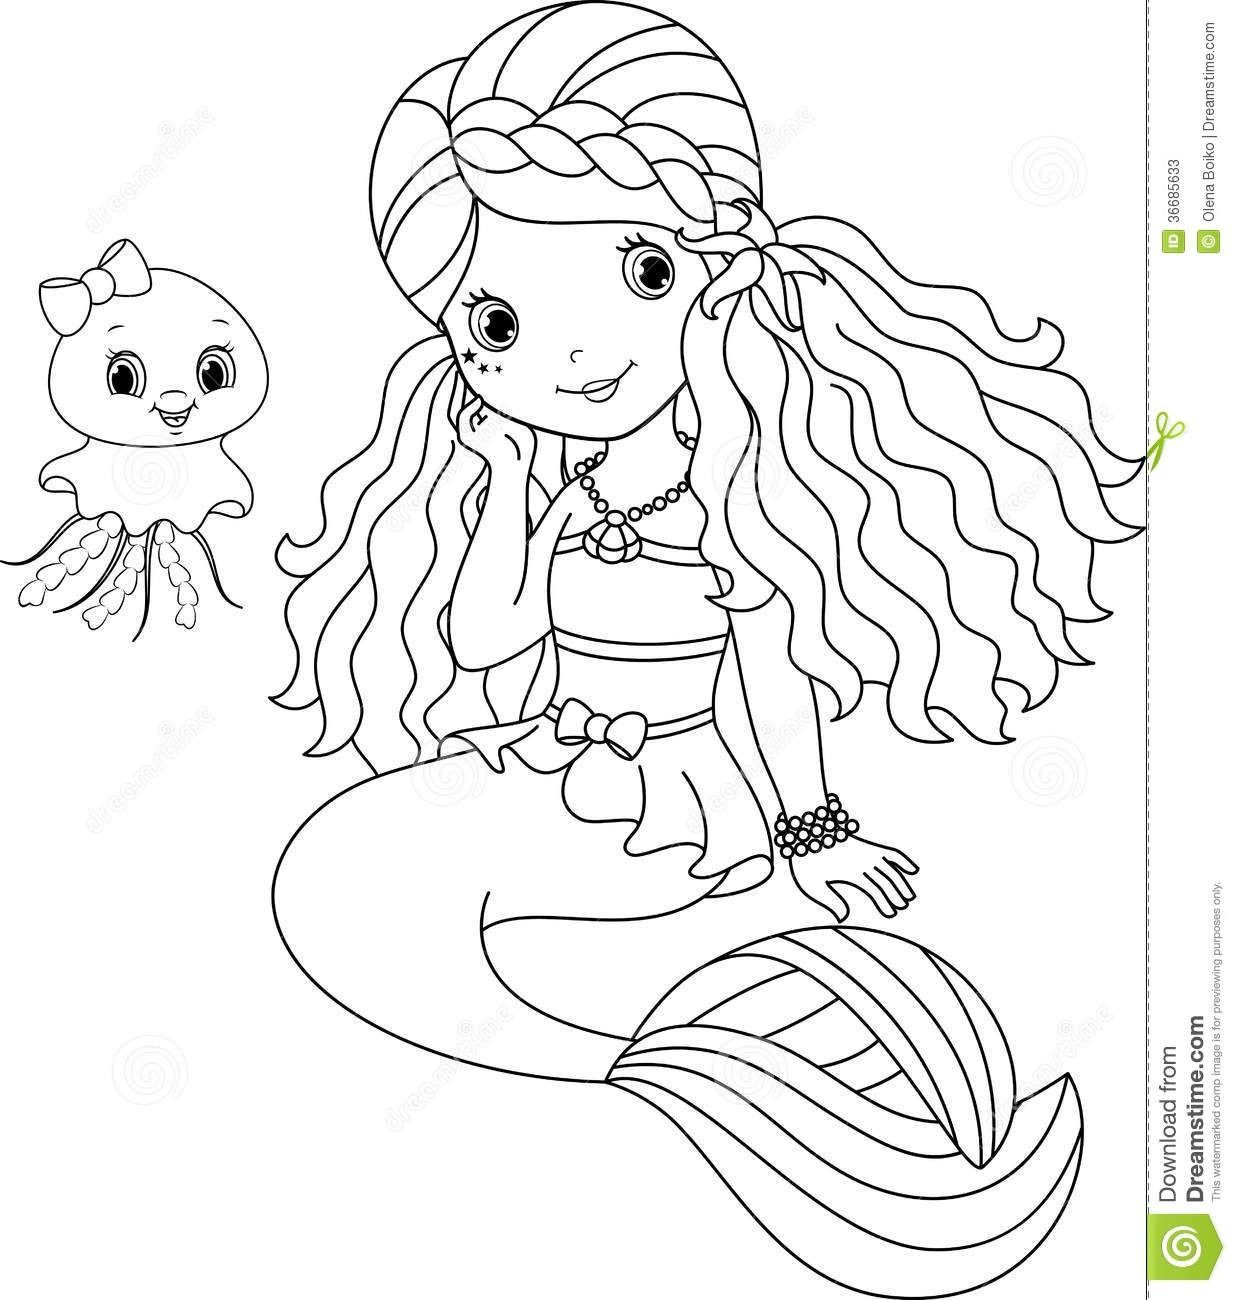 Cute Coloring Pages Best Coloring Pages For Kids Mermaid Coloring Pages Cute Coloring Pages Mermaid Coloring